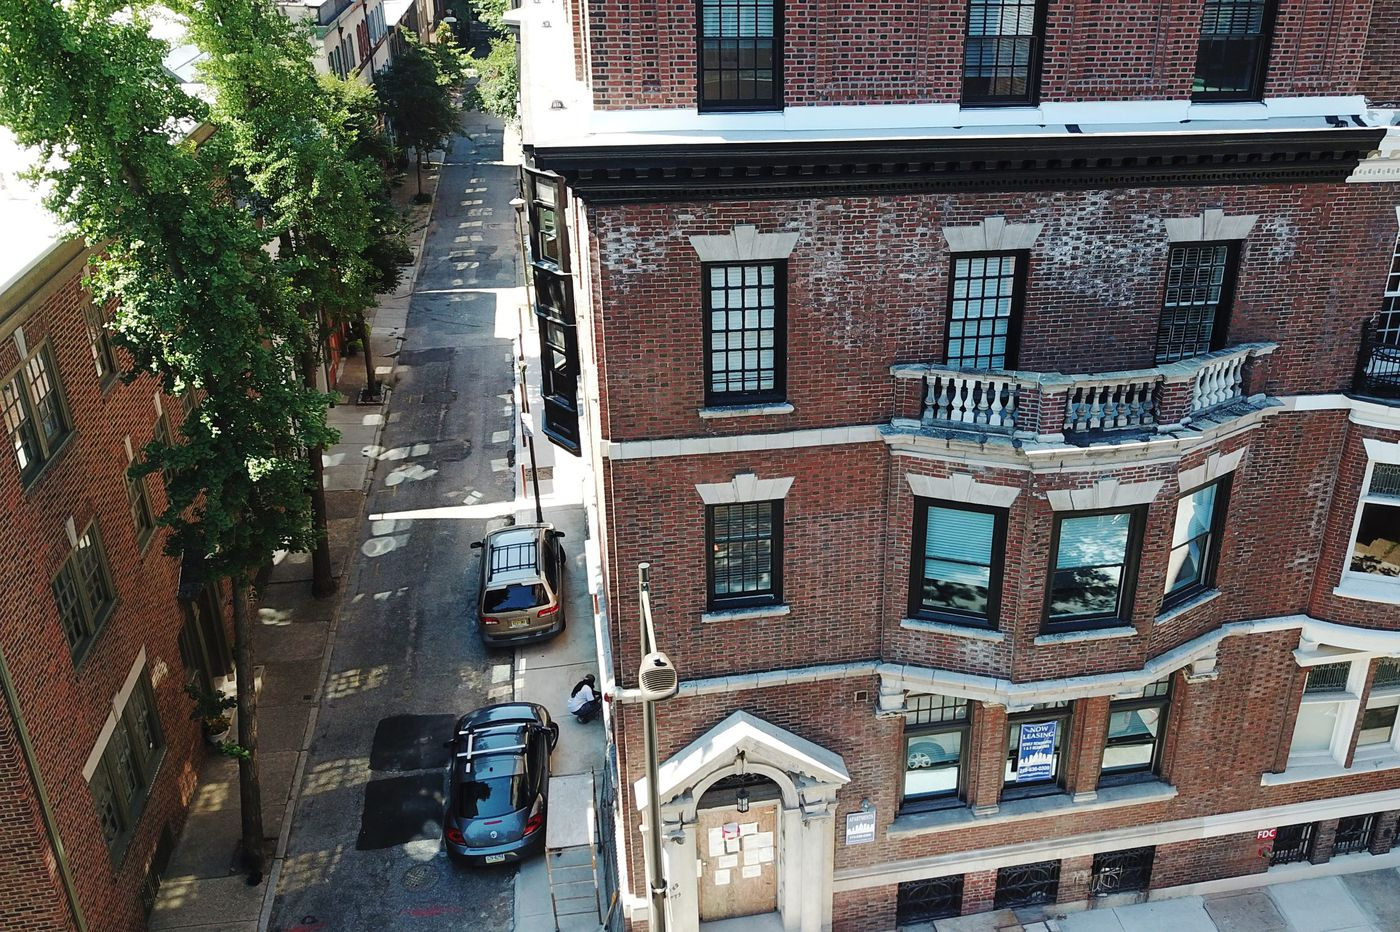 A tale of two historic Philadelphia buildings: One rises